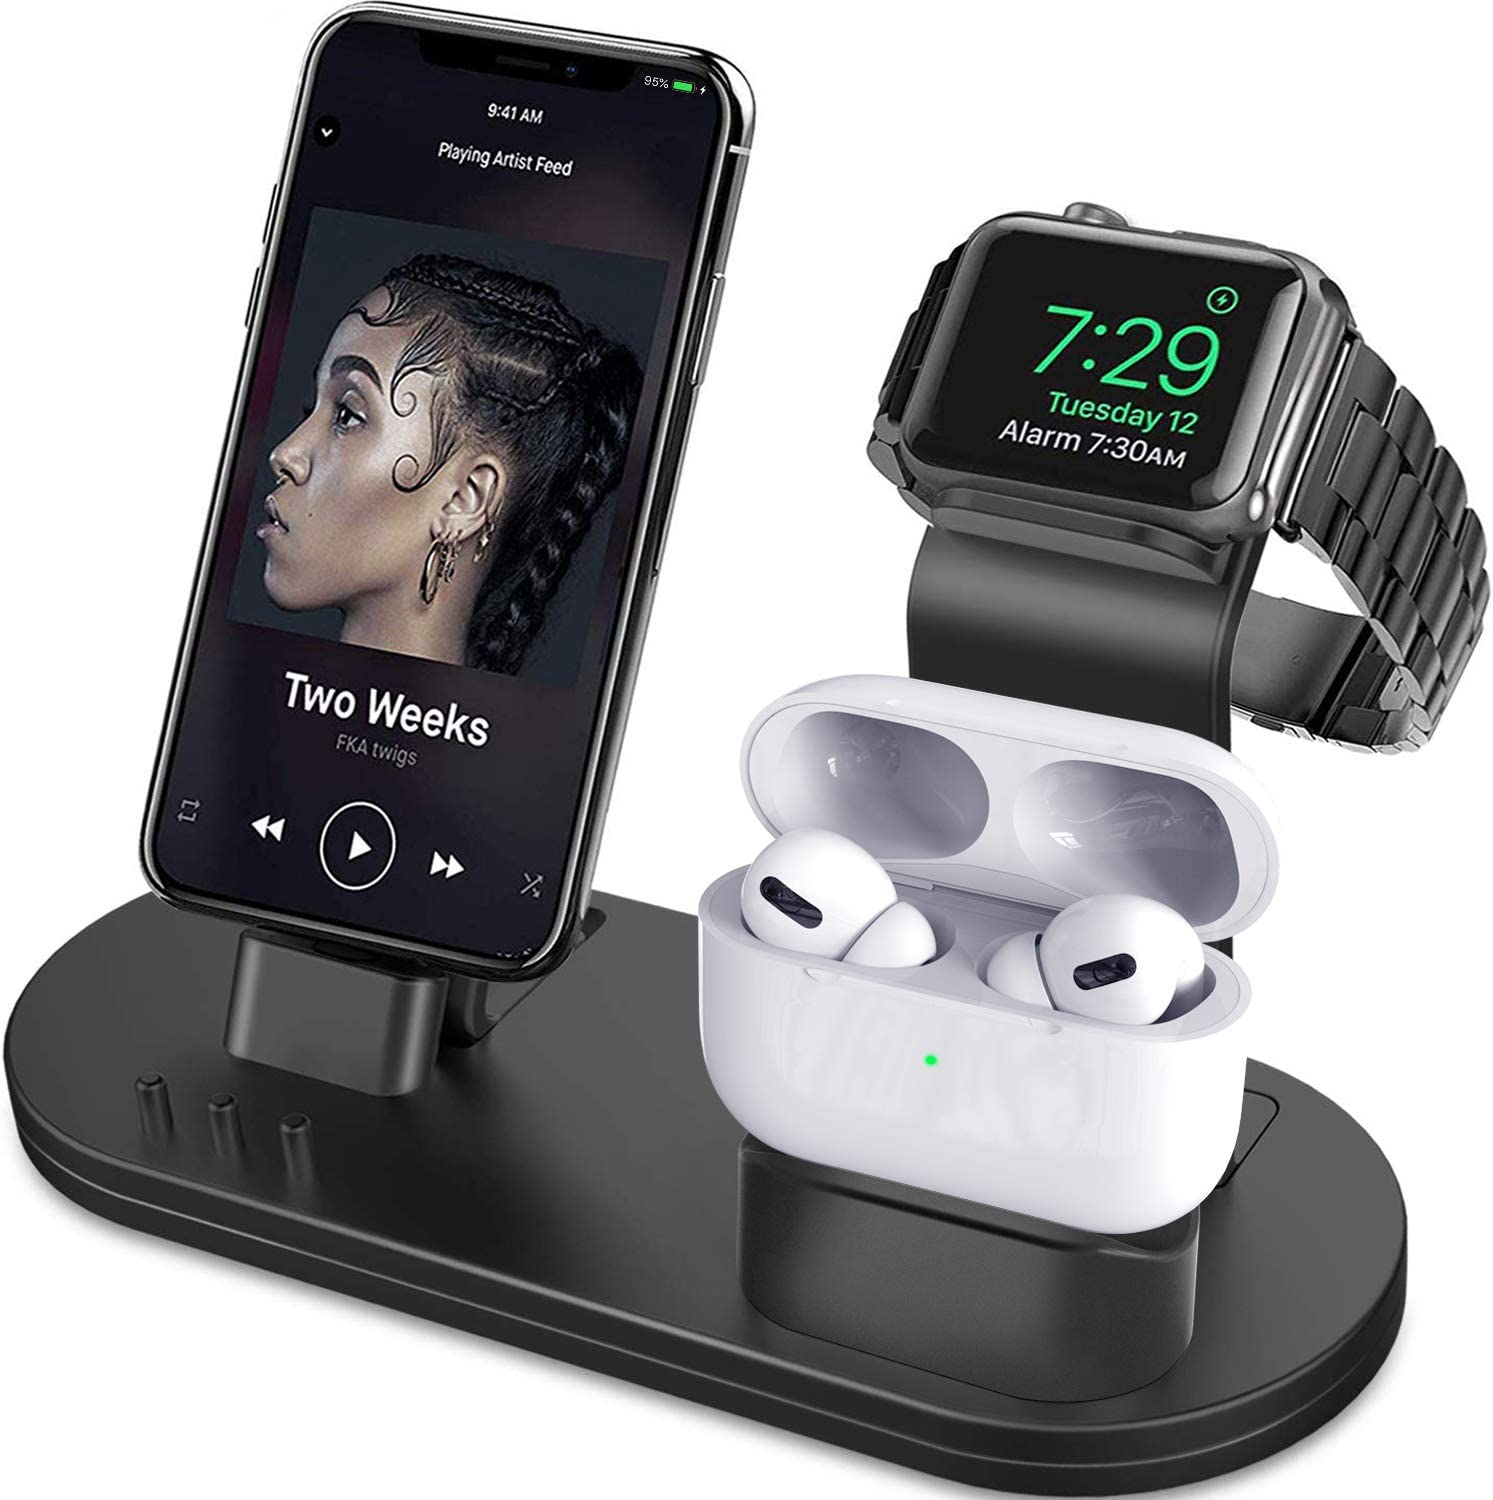 Amazon Com Olebr 3 In 1 Charging Stand Compatible With Iwatch Series 6 Se 5 4 3 2 1 Airpods Pro And Iphone Series 12 11 Series Xs X Max Xr X 8 8p 7 7p 6s 6s Plus Original Charger Cables Required Black